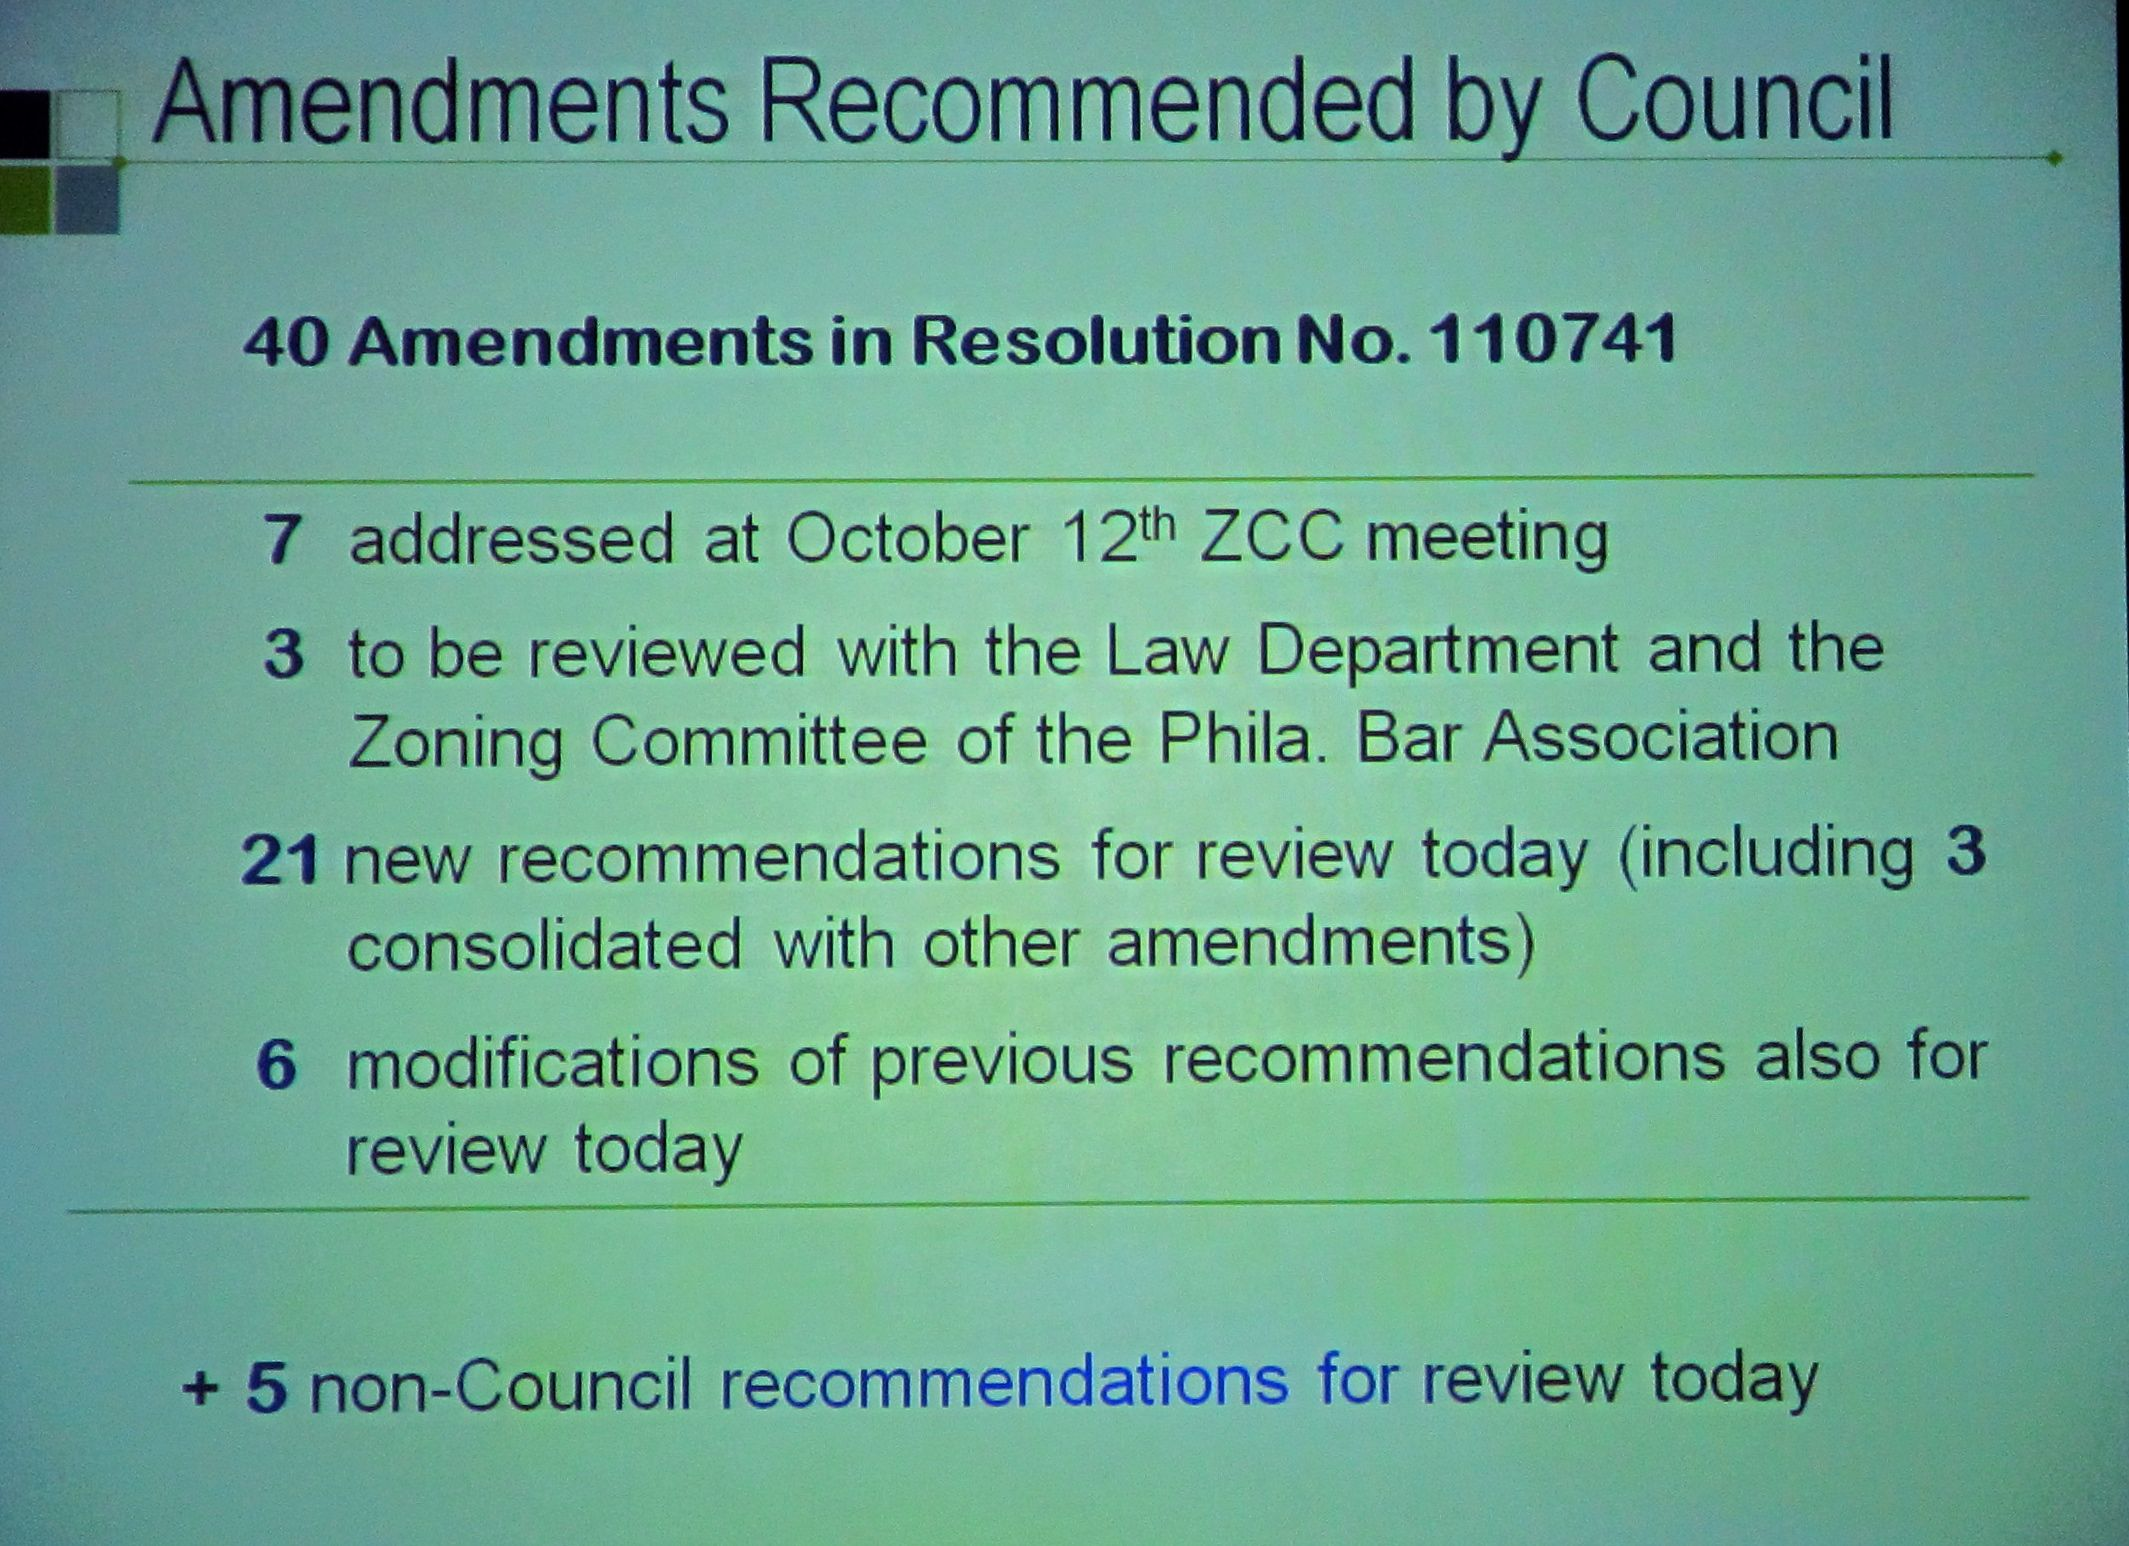 Zoning Code Commission holds its second-to-last meeting - probably